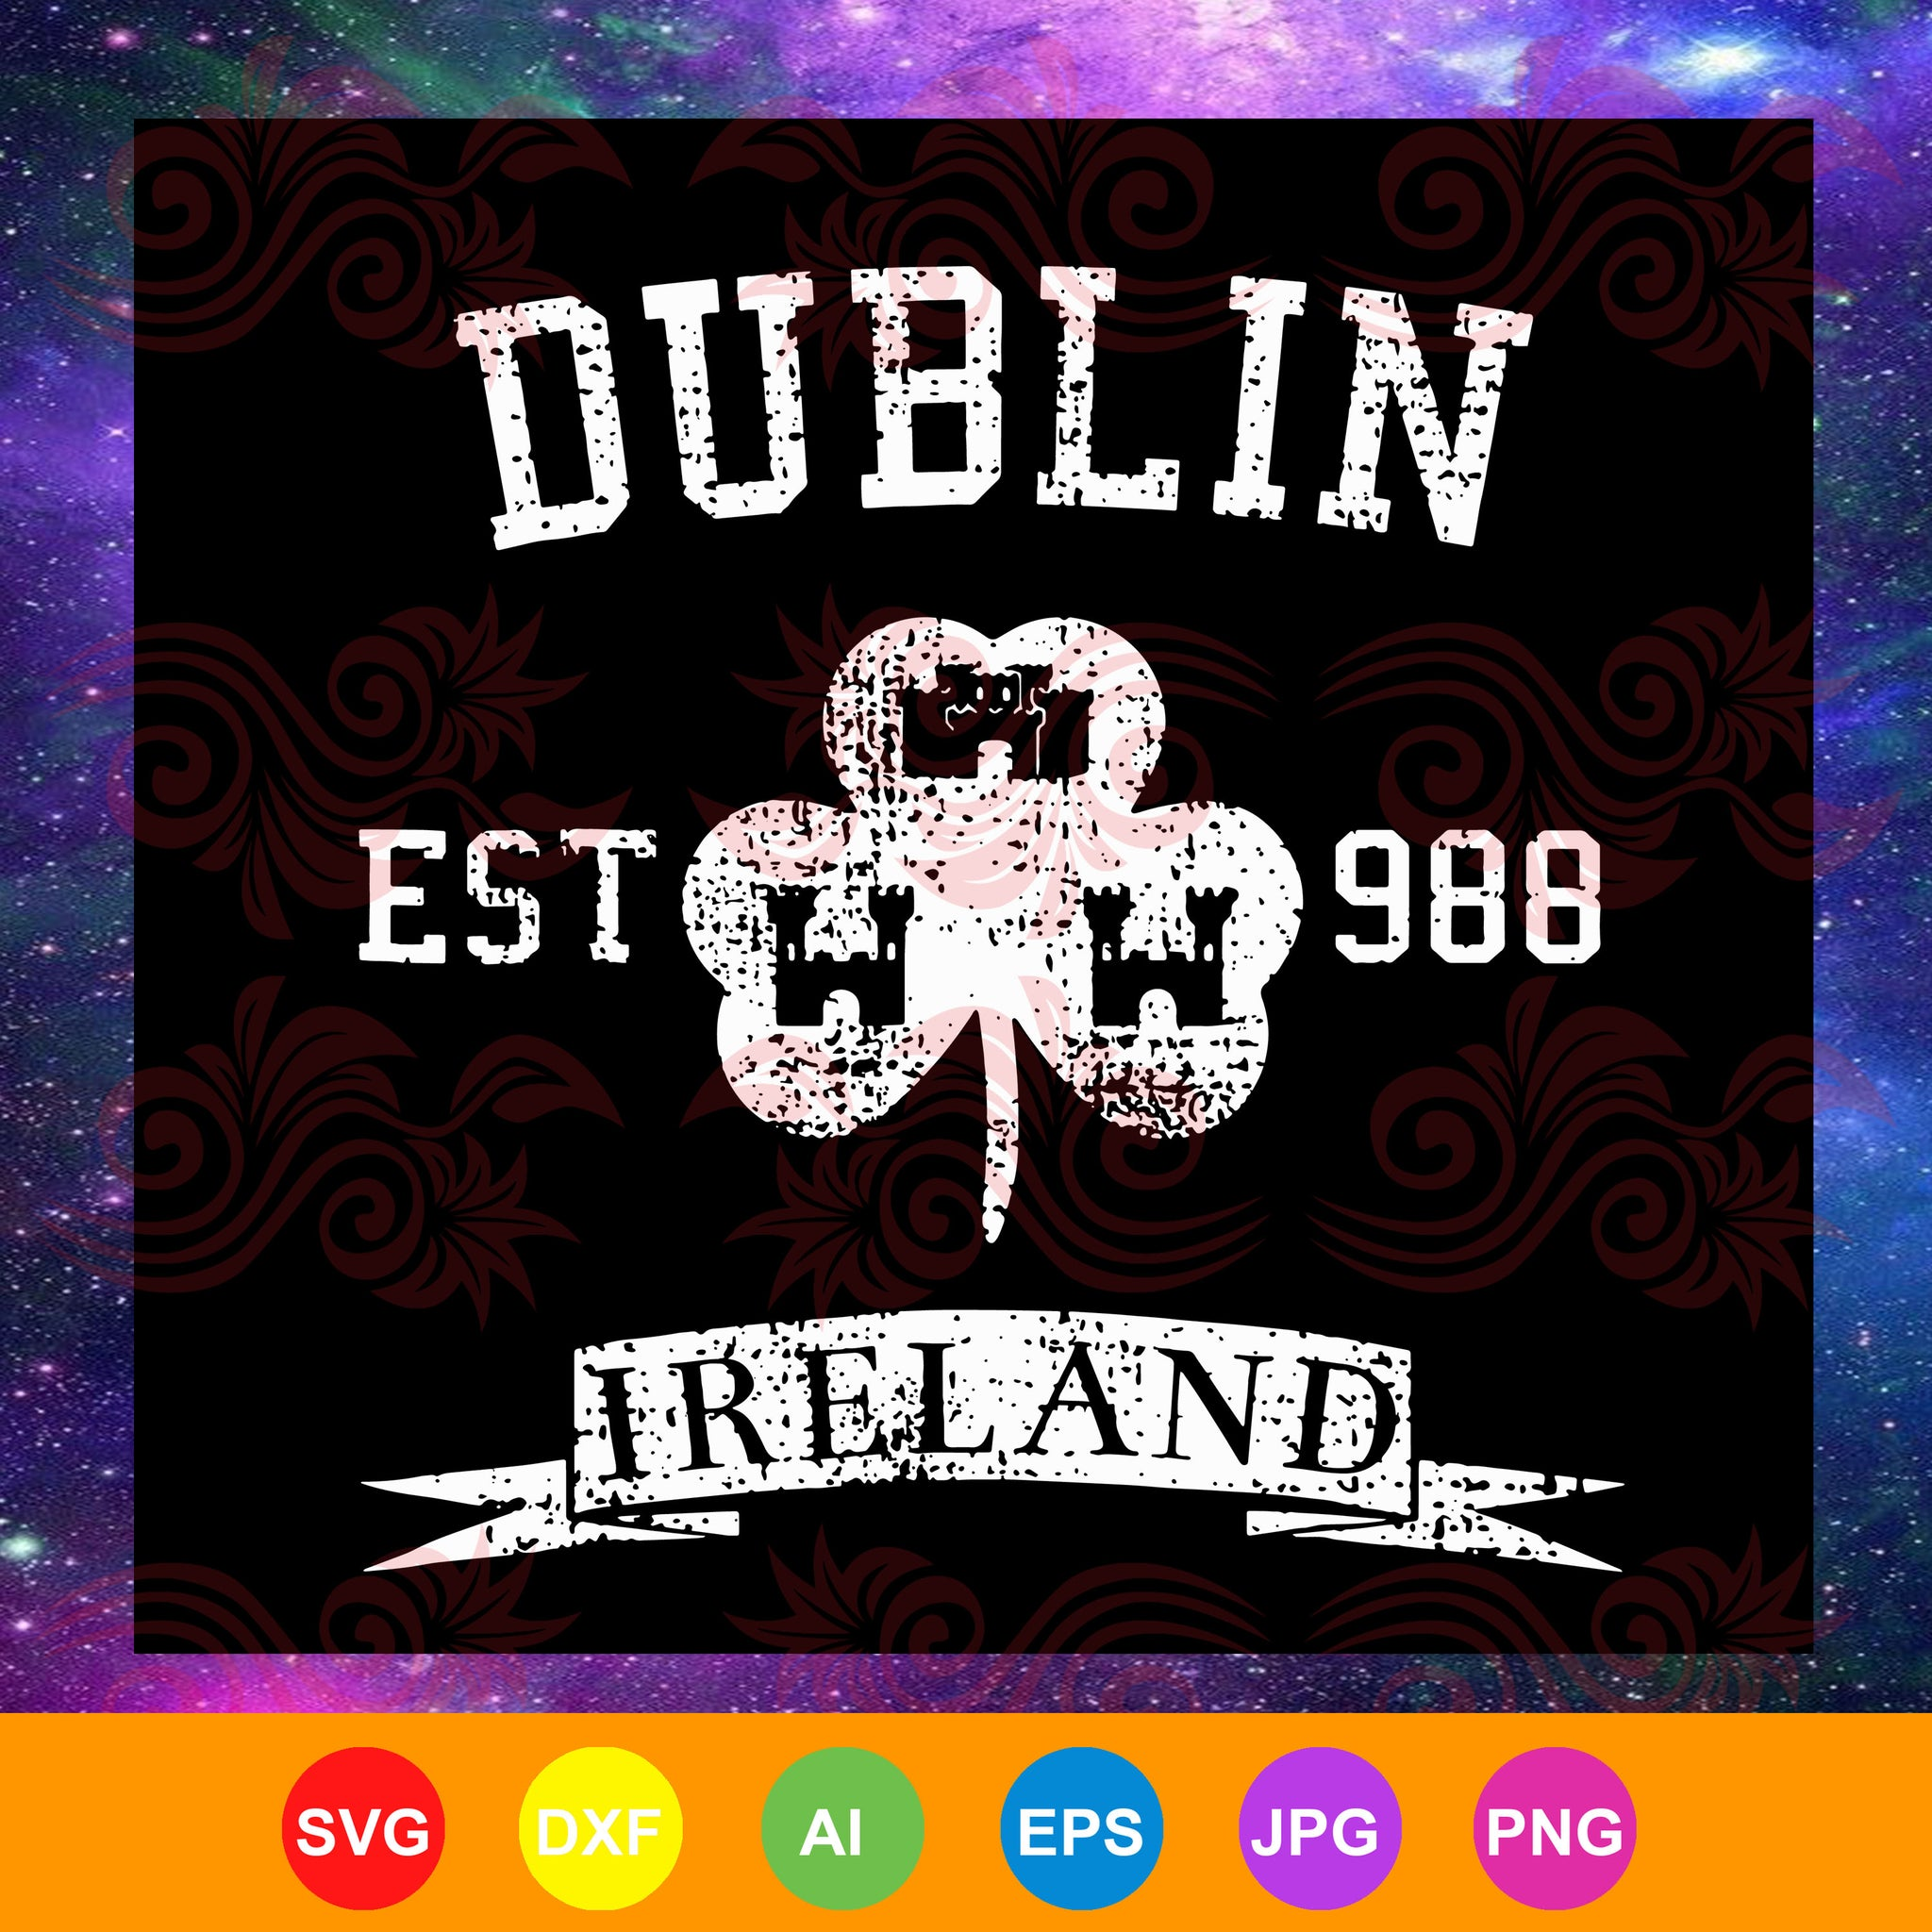 Dublin est 988 ireland,dublin svg, ireland svg,  st patrick's day svg, st patrick's day gift, st patrick's day shirt, patricks day gifts,trending svg, Files For Silhouette, Files For Cricut, SVG, DXF, EPS, PNG, Instant Download